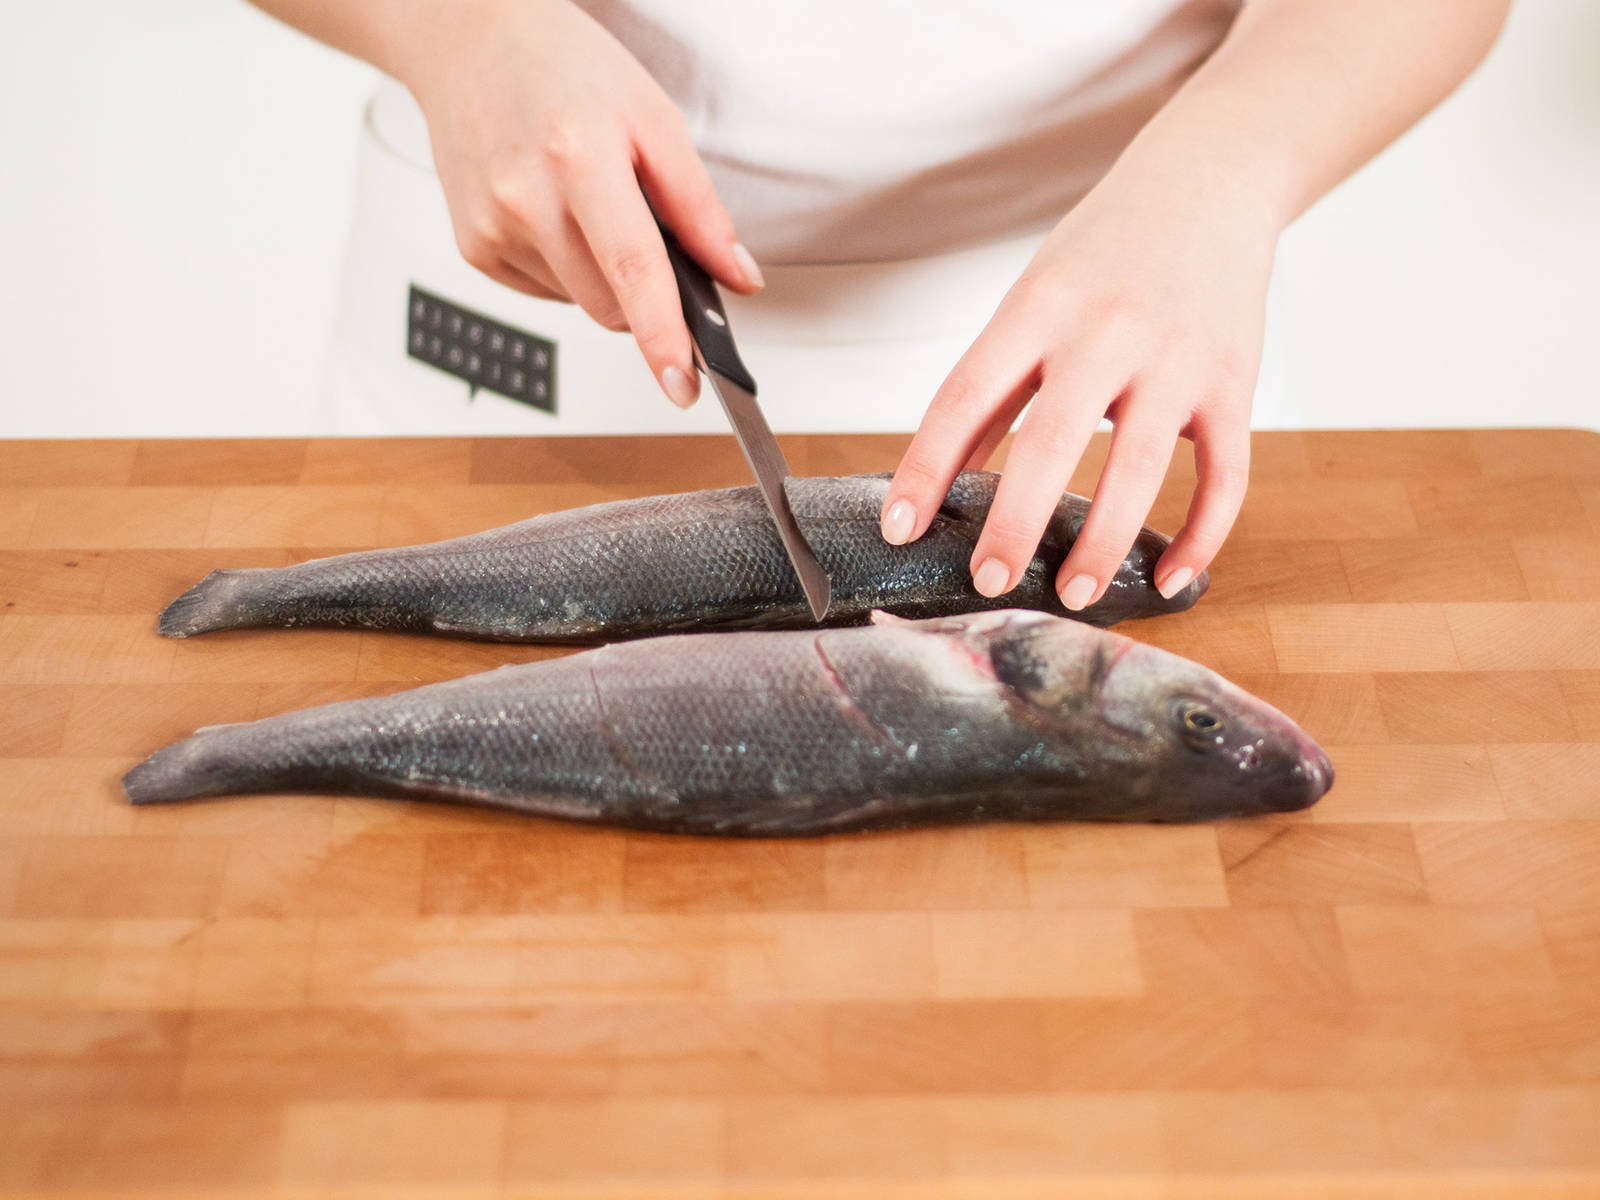 Place fish onto cutting board. Working with one fish at a time, use a sharp knife to make two cuts on each side of the fish.